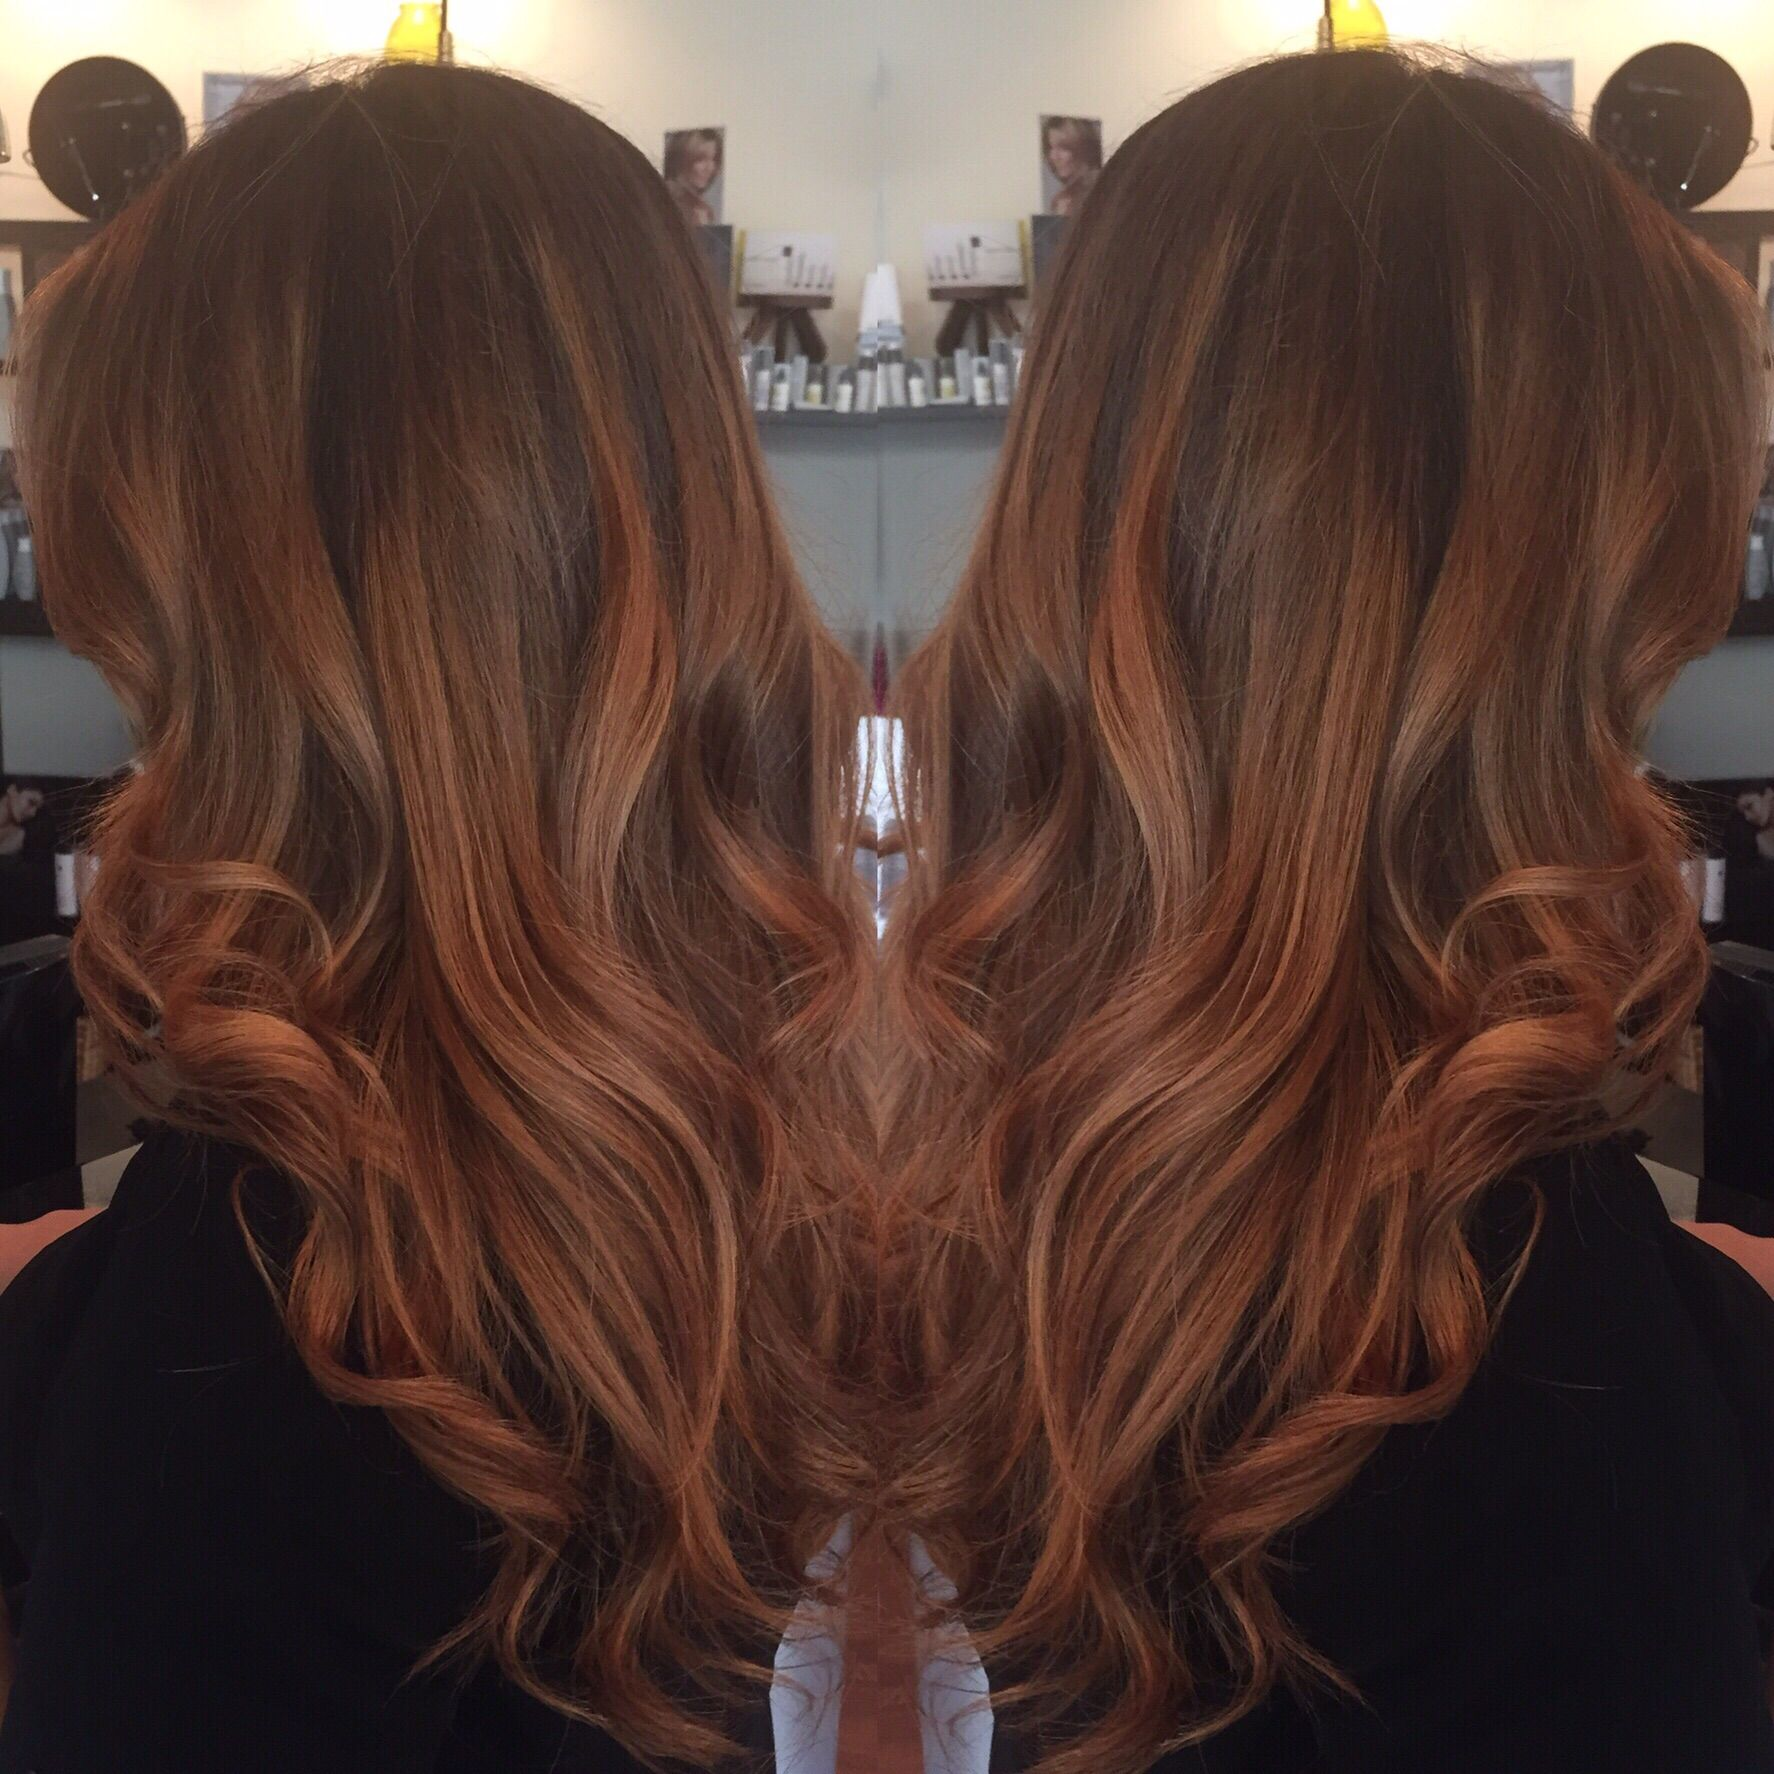 Natural balayage with rich coppery red/brown. Perfect for fall.